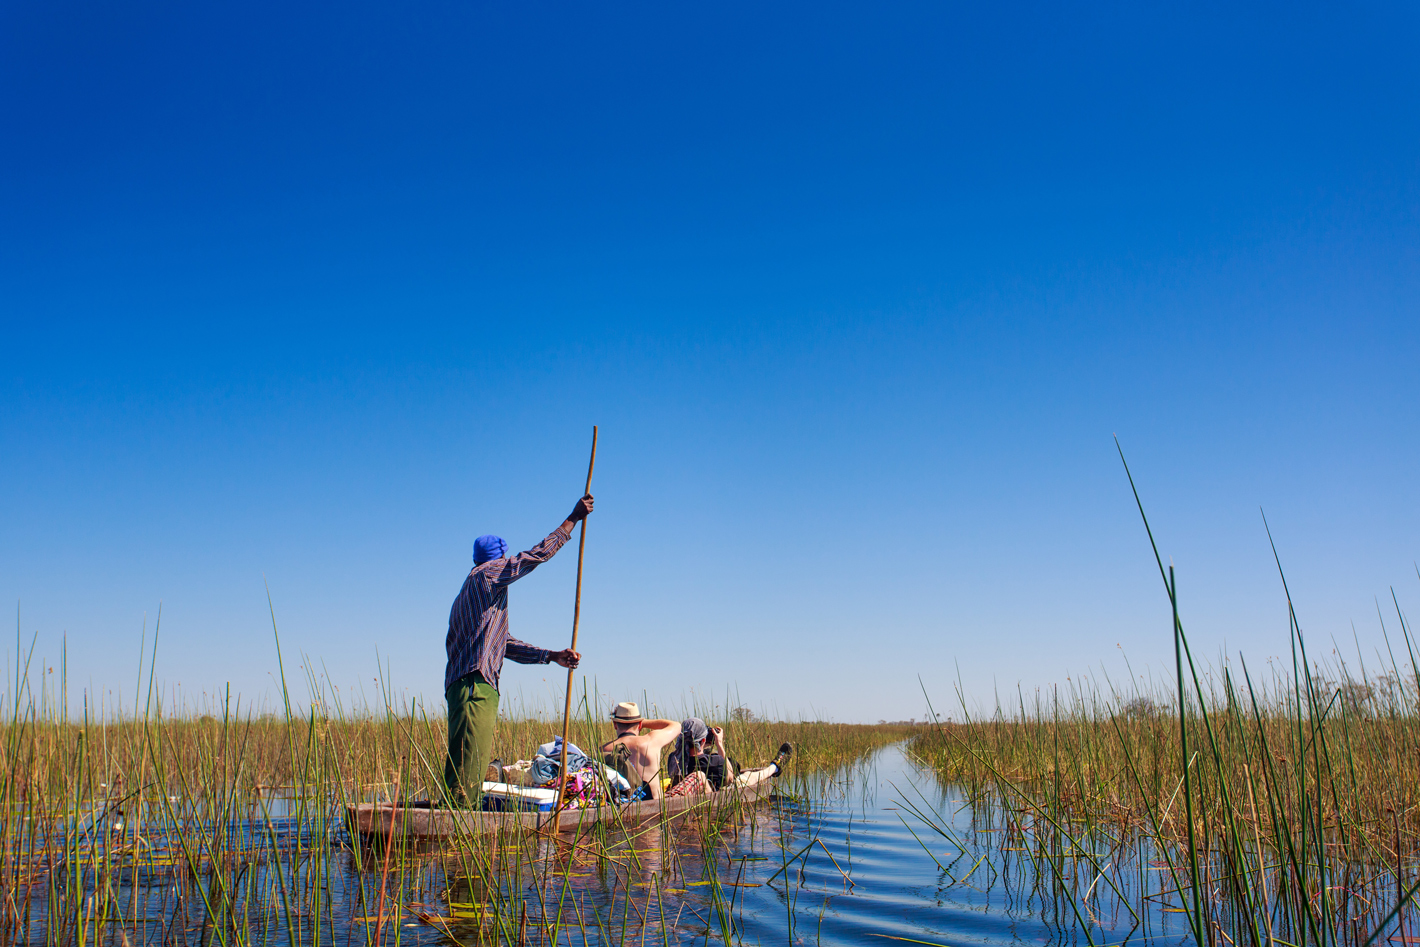 Mokoro trip through reeds in the Okavango Delta